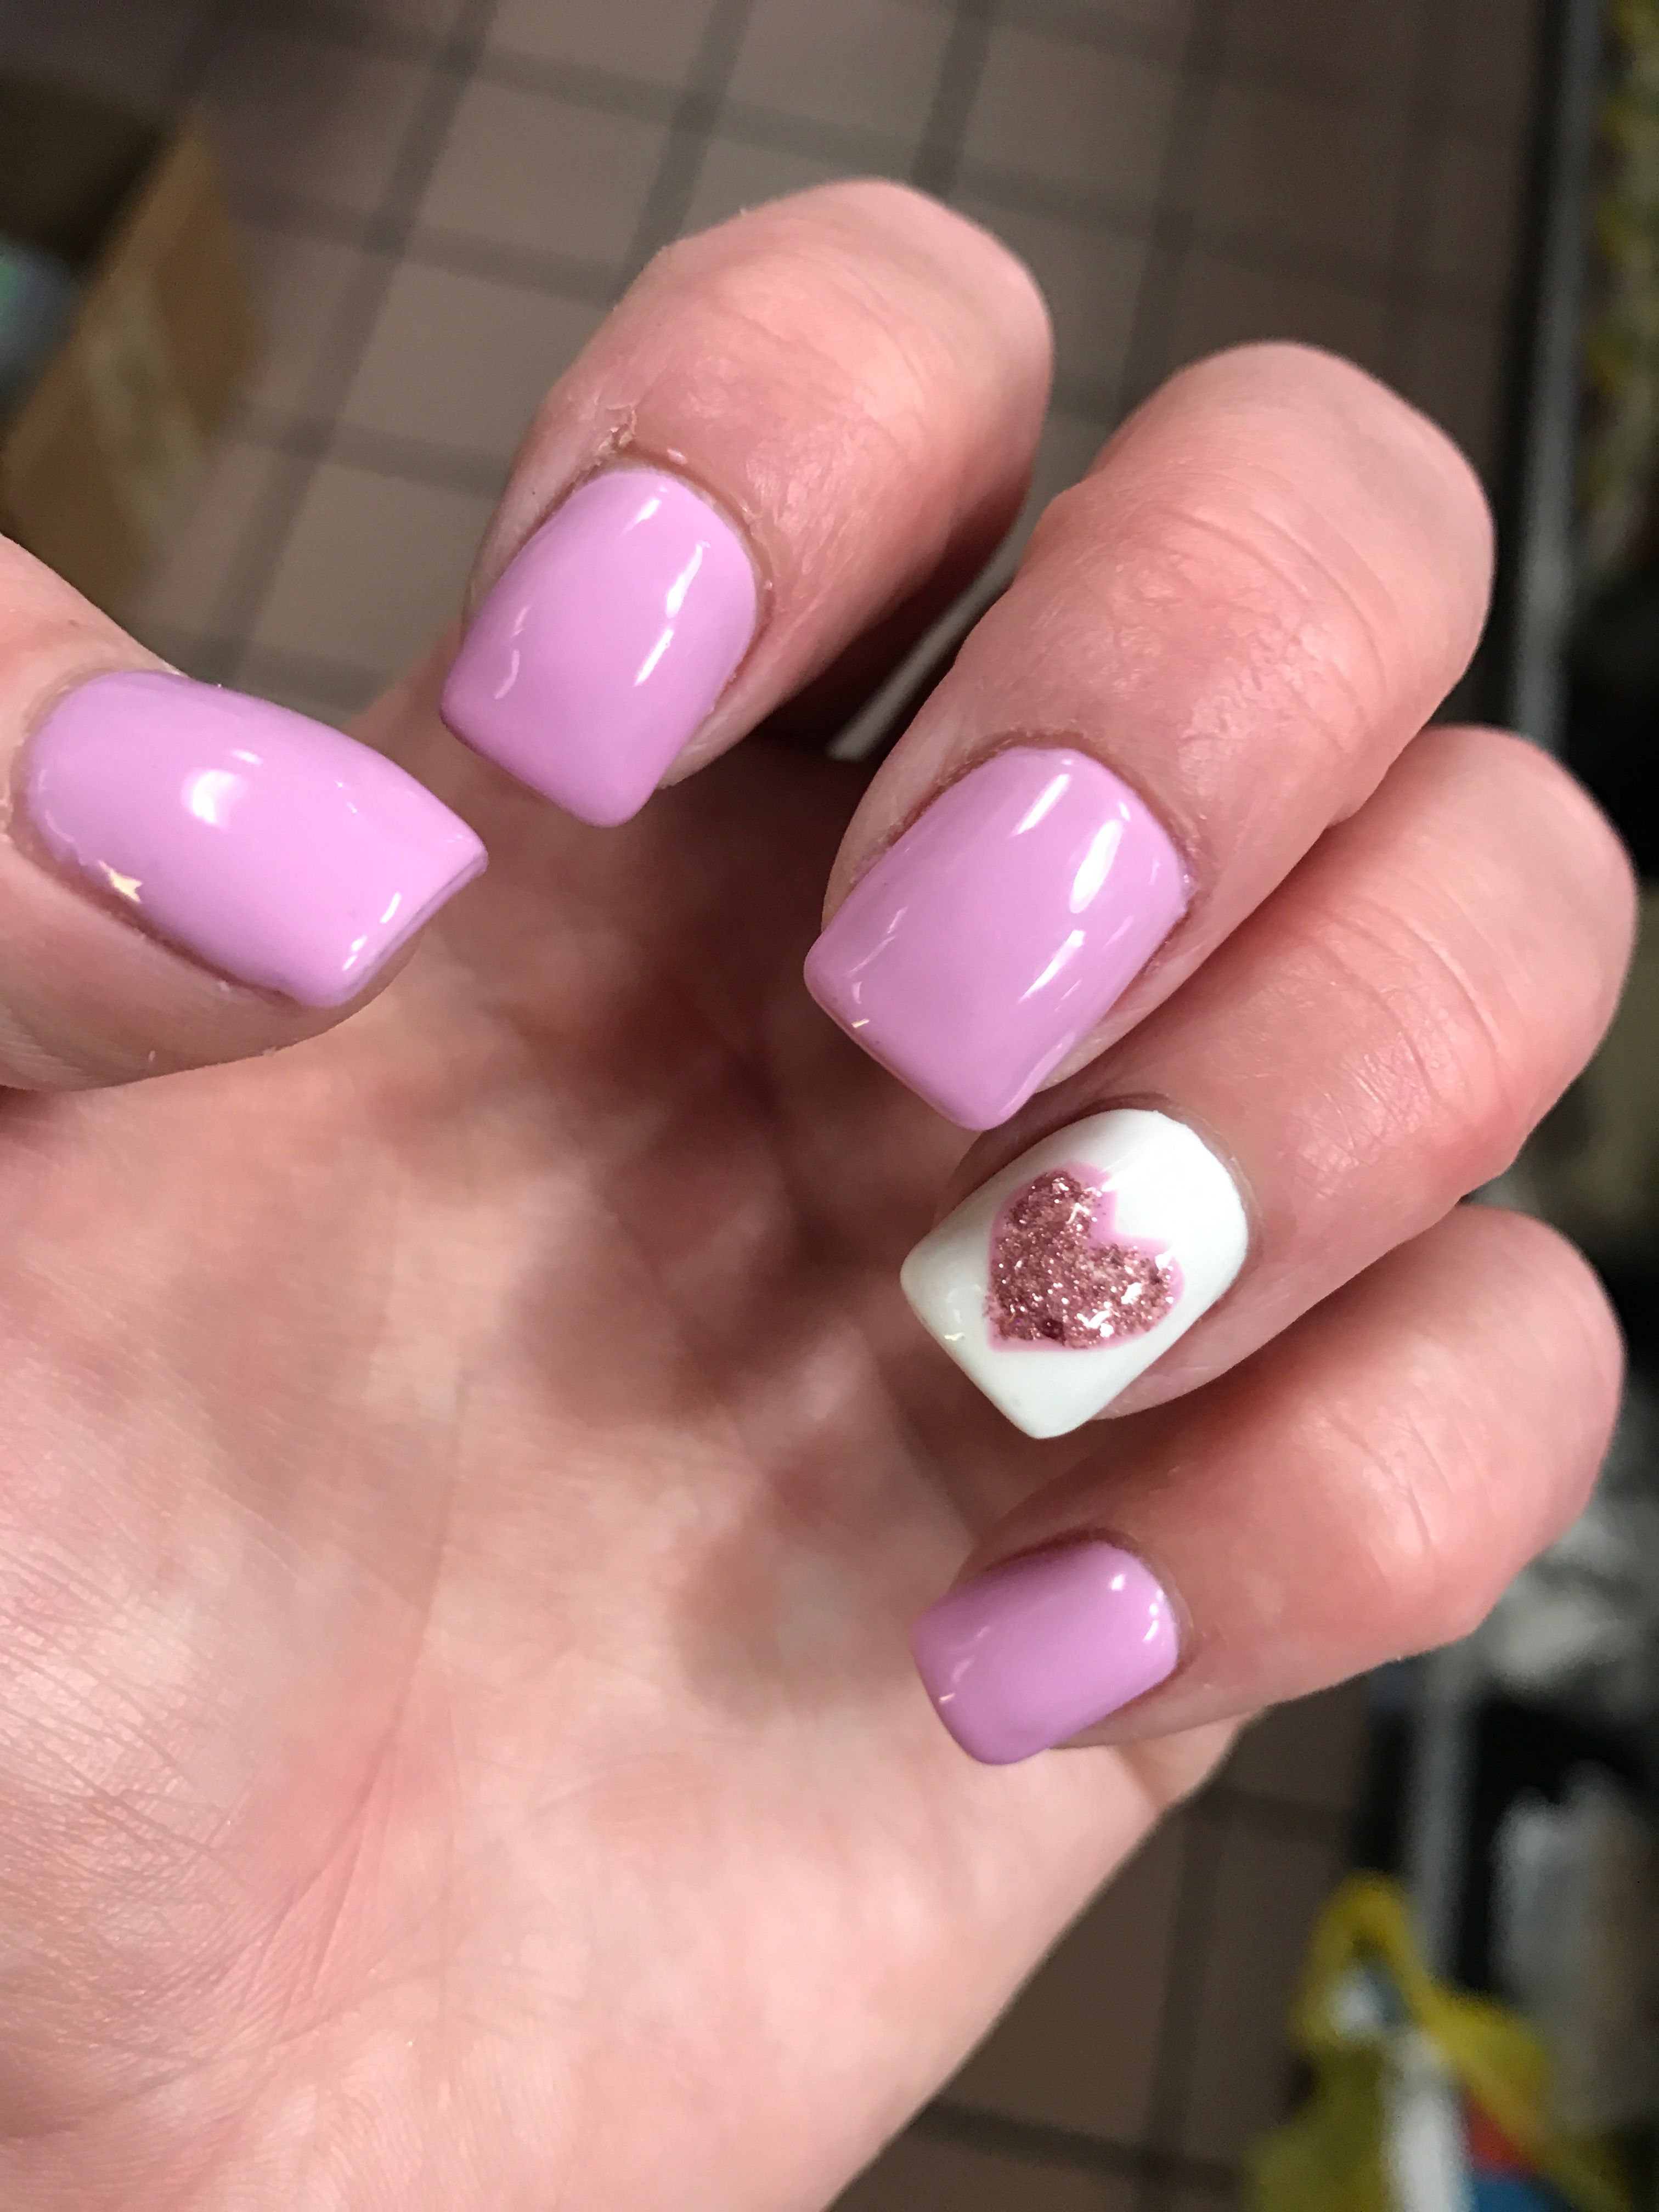 Valentines Day Nails 2017 Pink Lilac Gel Manicure Accent Nail White With Confetti Heart